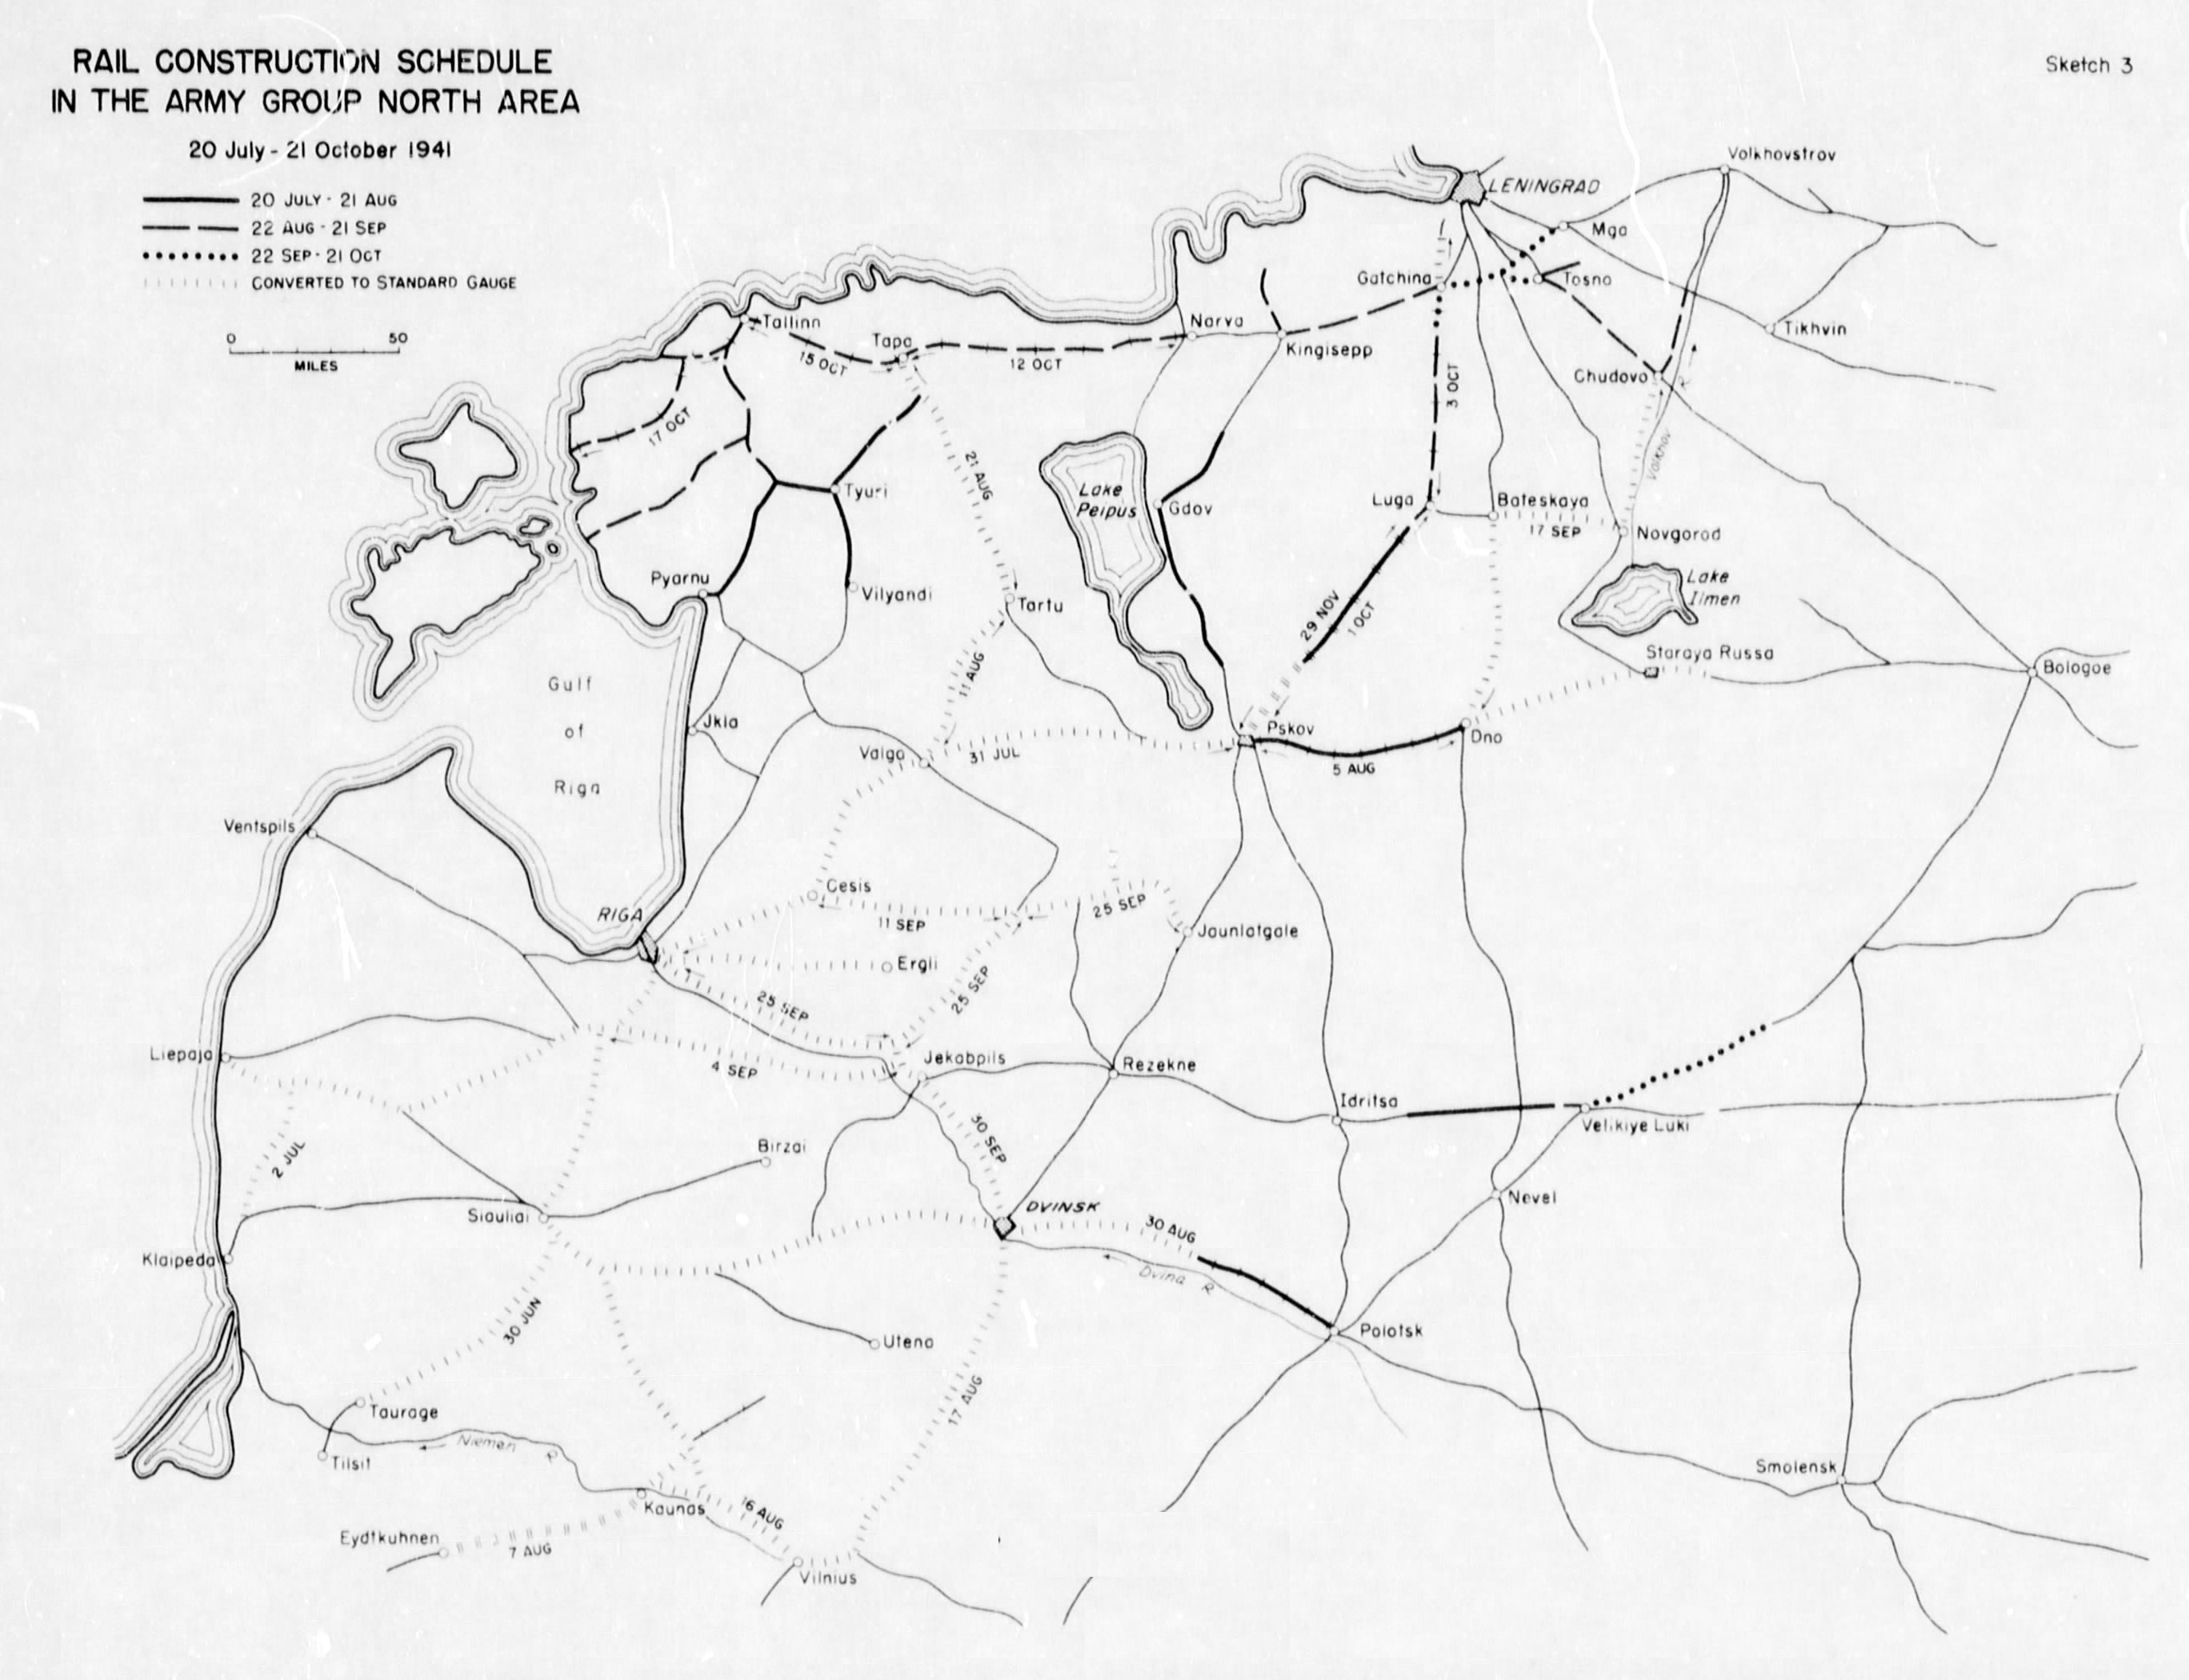 Sketch 2 rail construction schedule in the army group north area